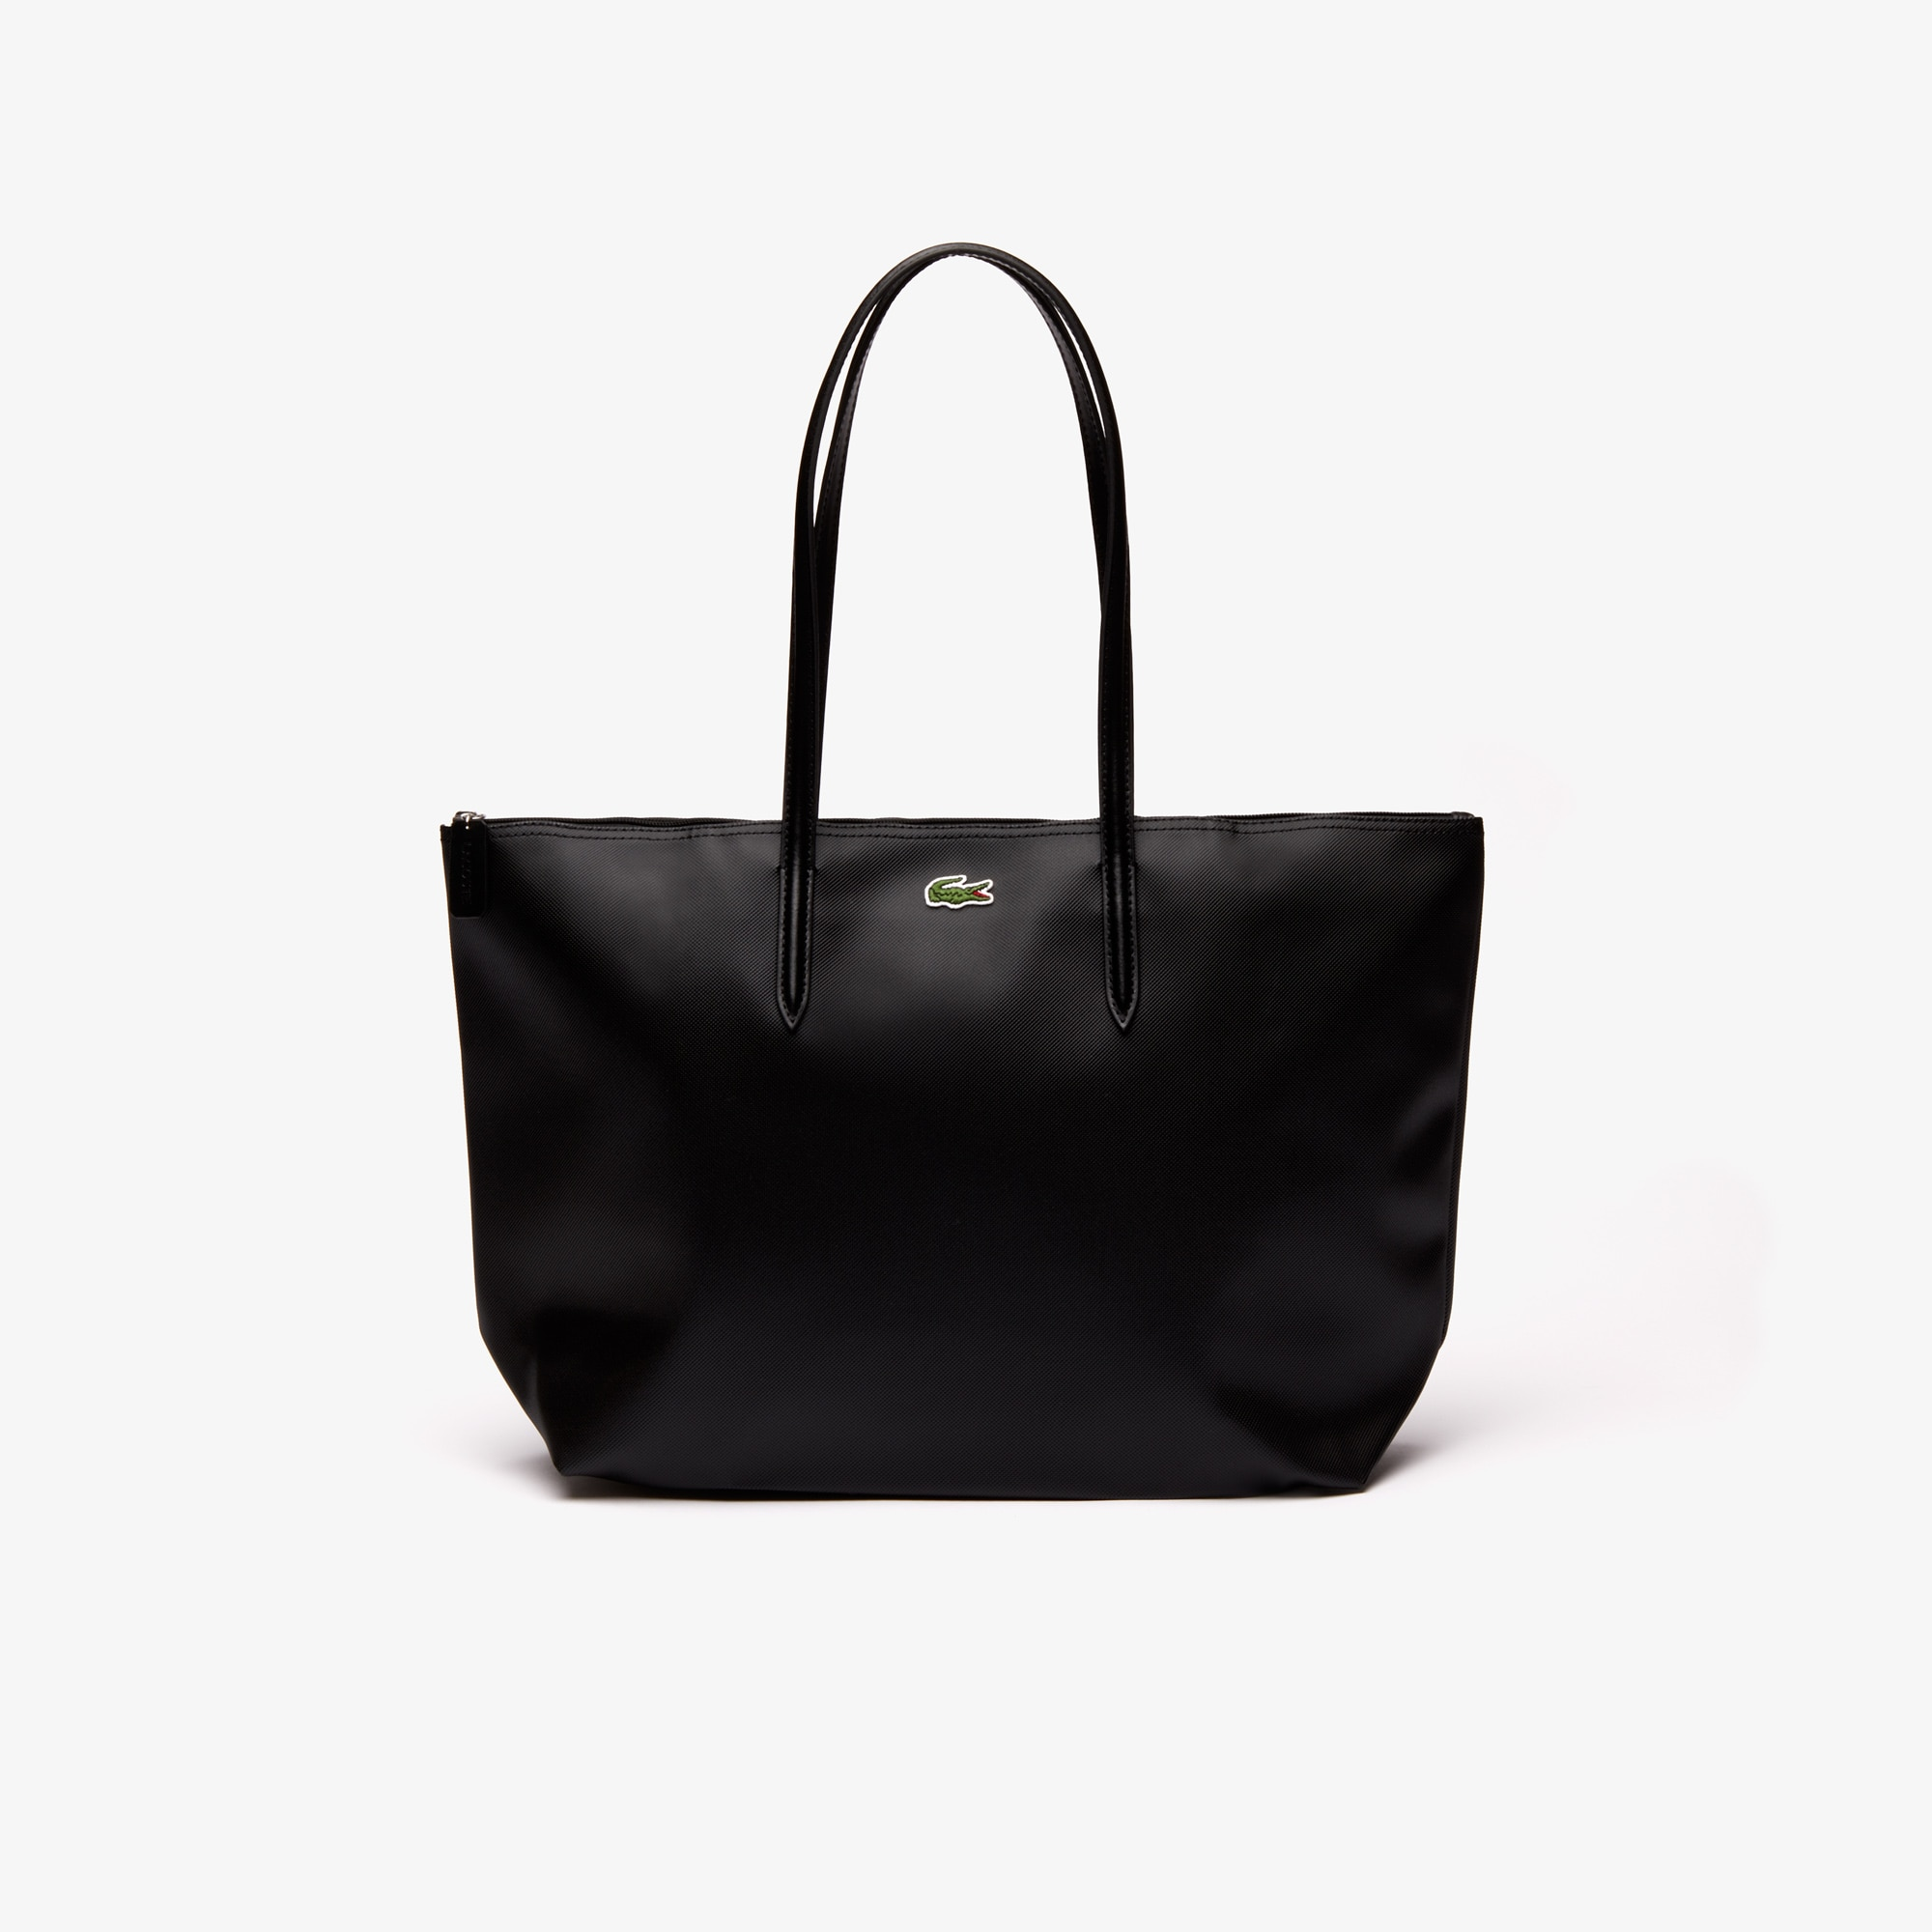 Women'S L.12.12 Concept Small Zip Tote Bag in Black from Lacoste